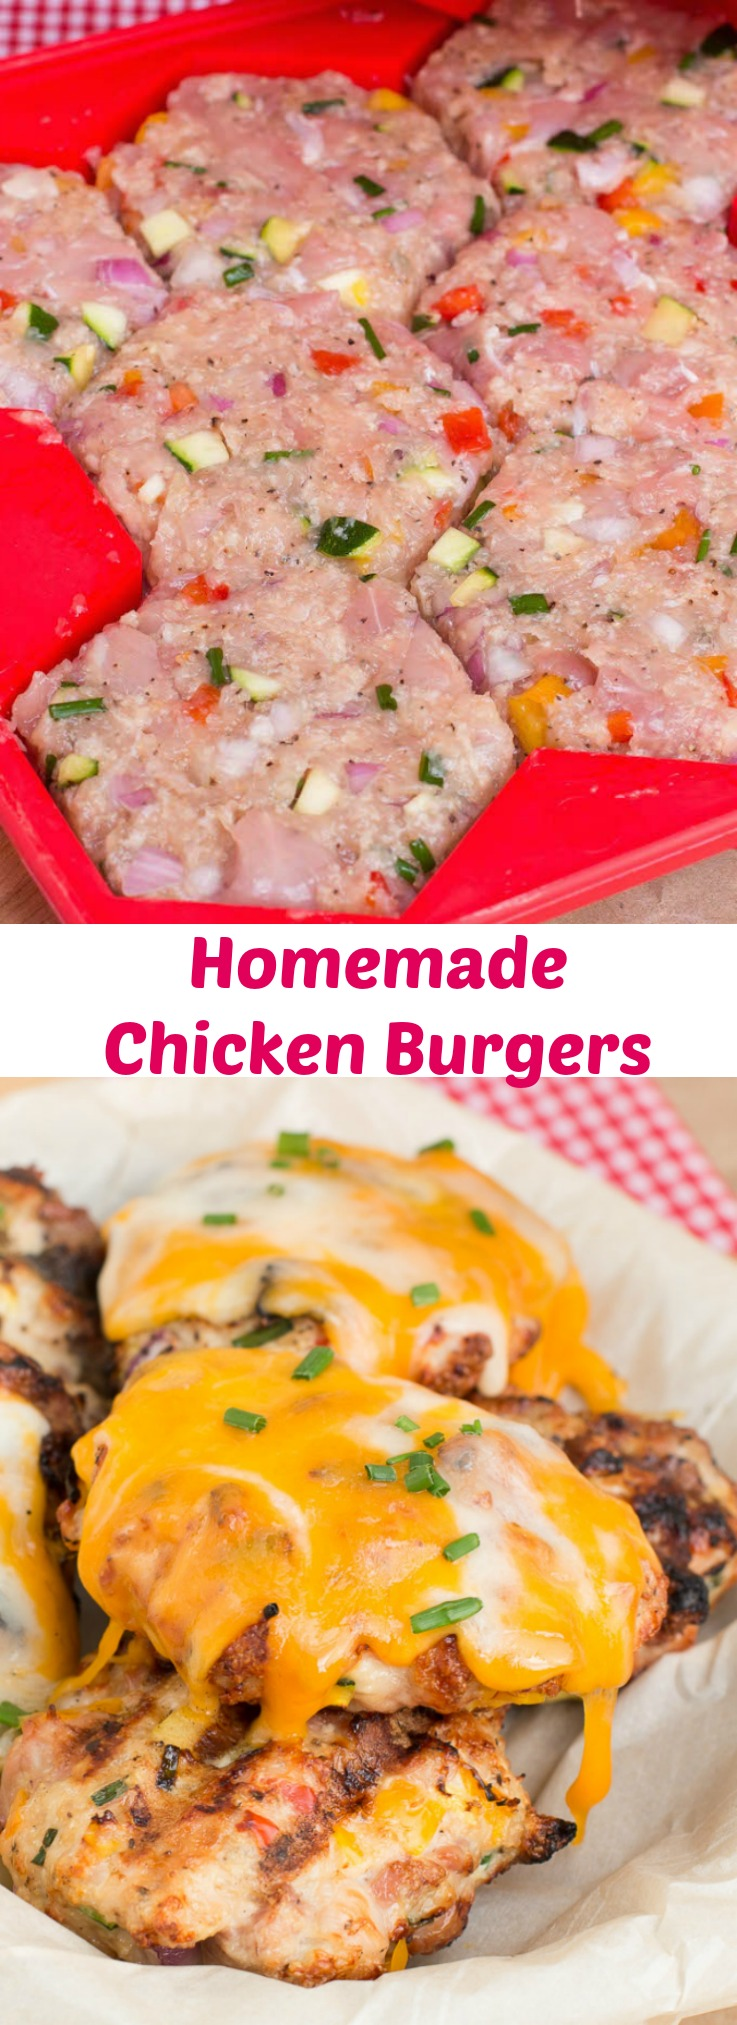 Homemade Chicken burgers